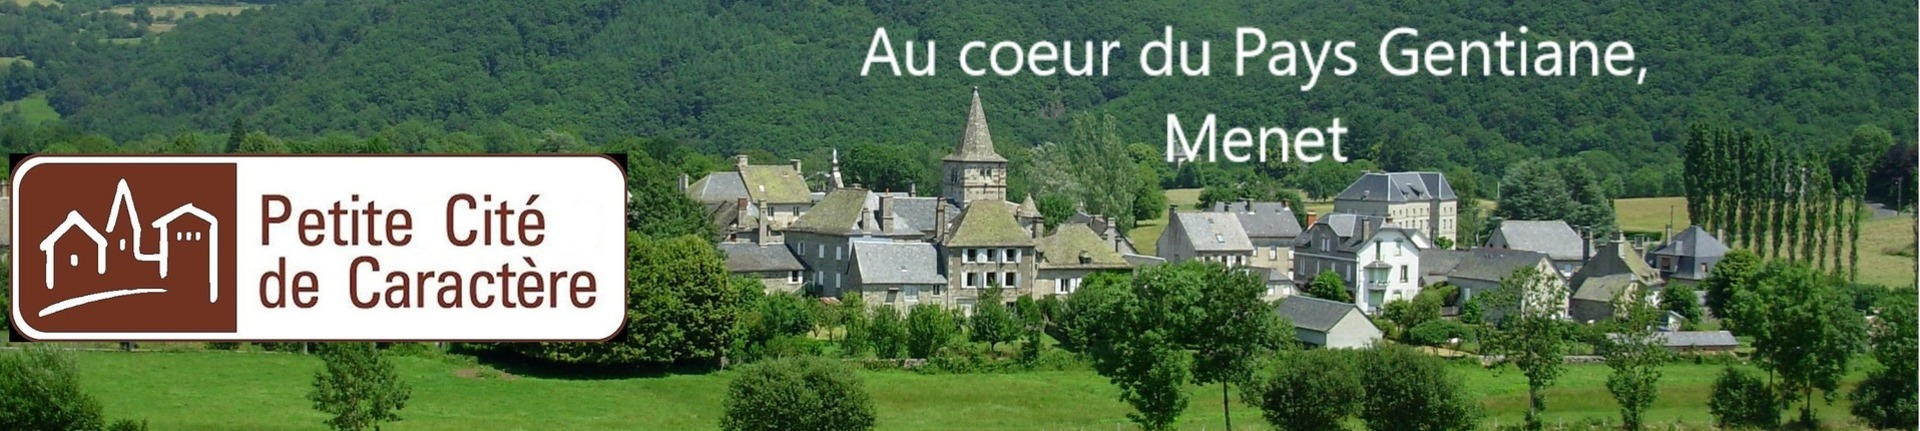 Commune de Menet - Cantal